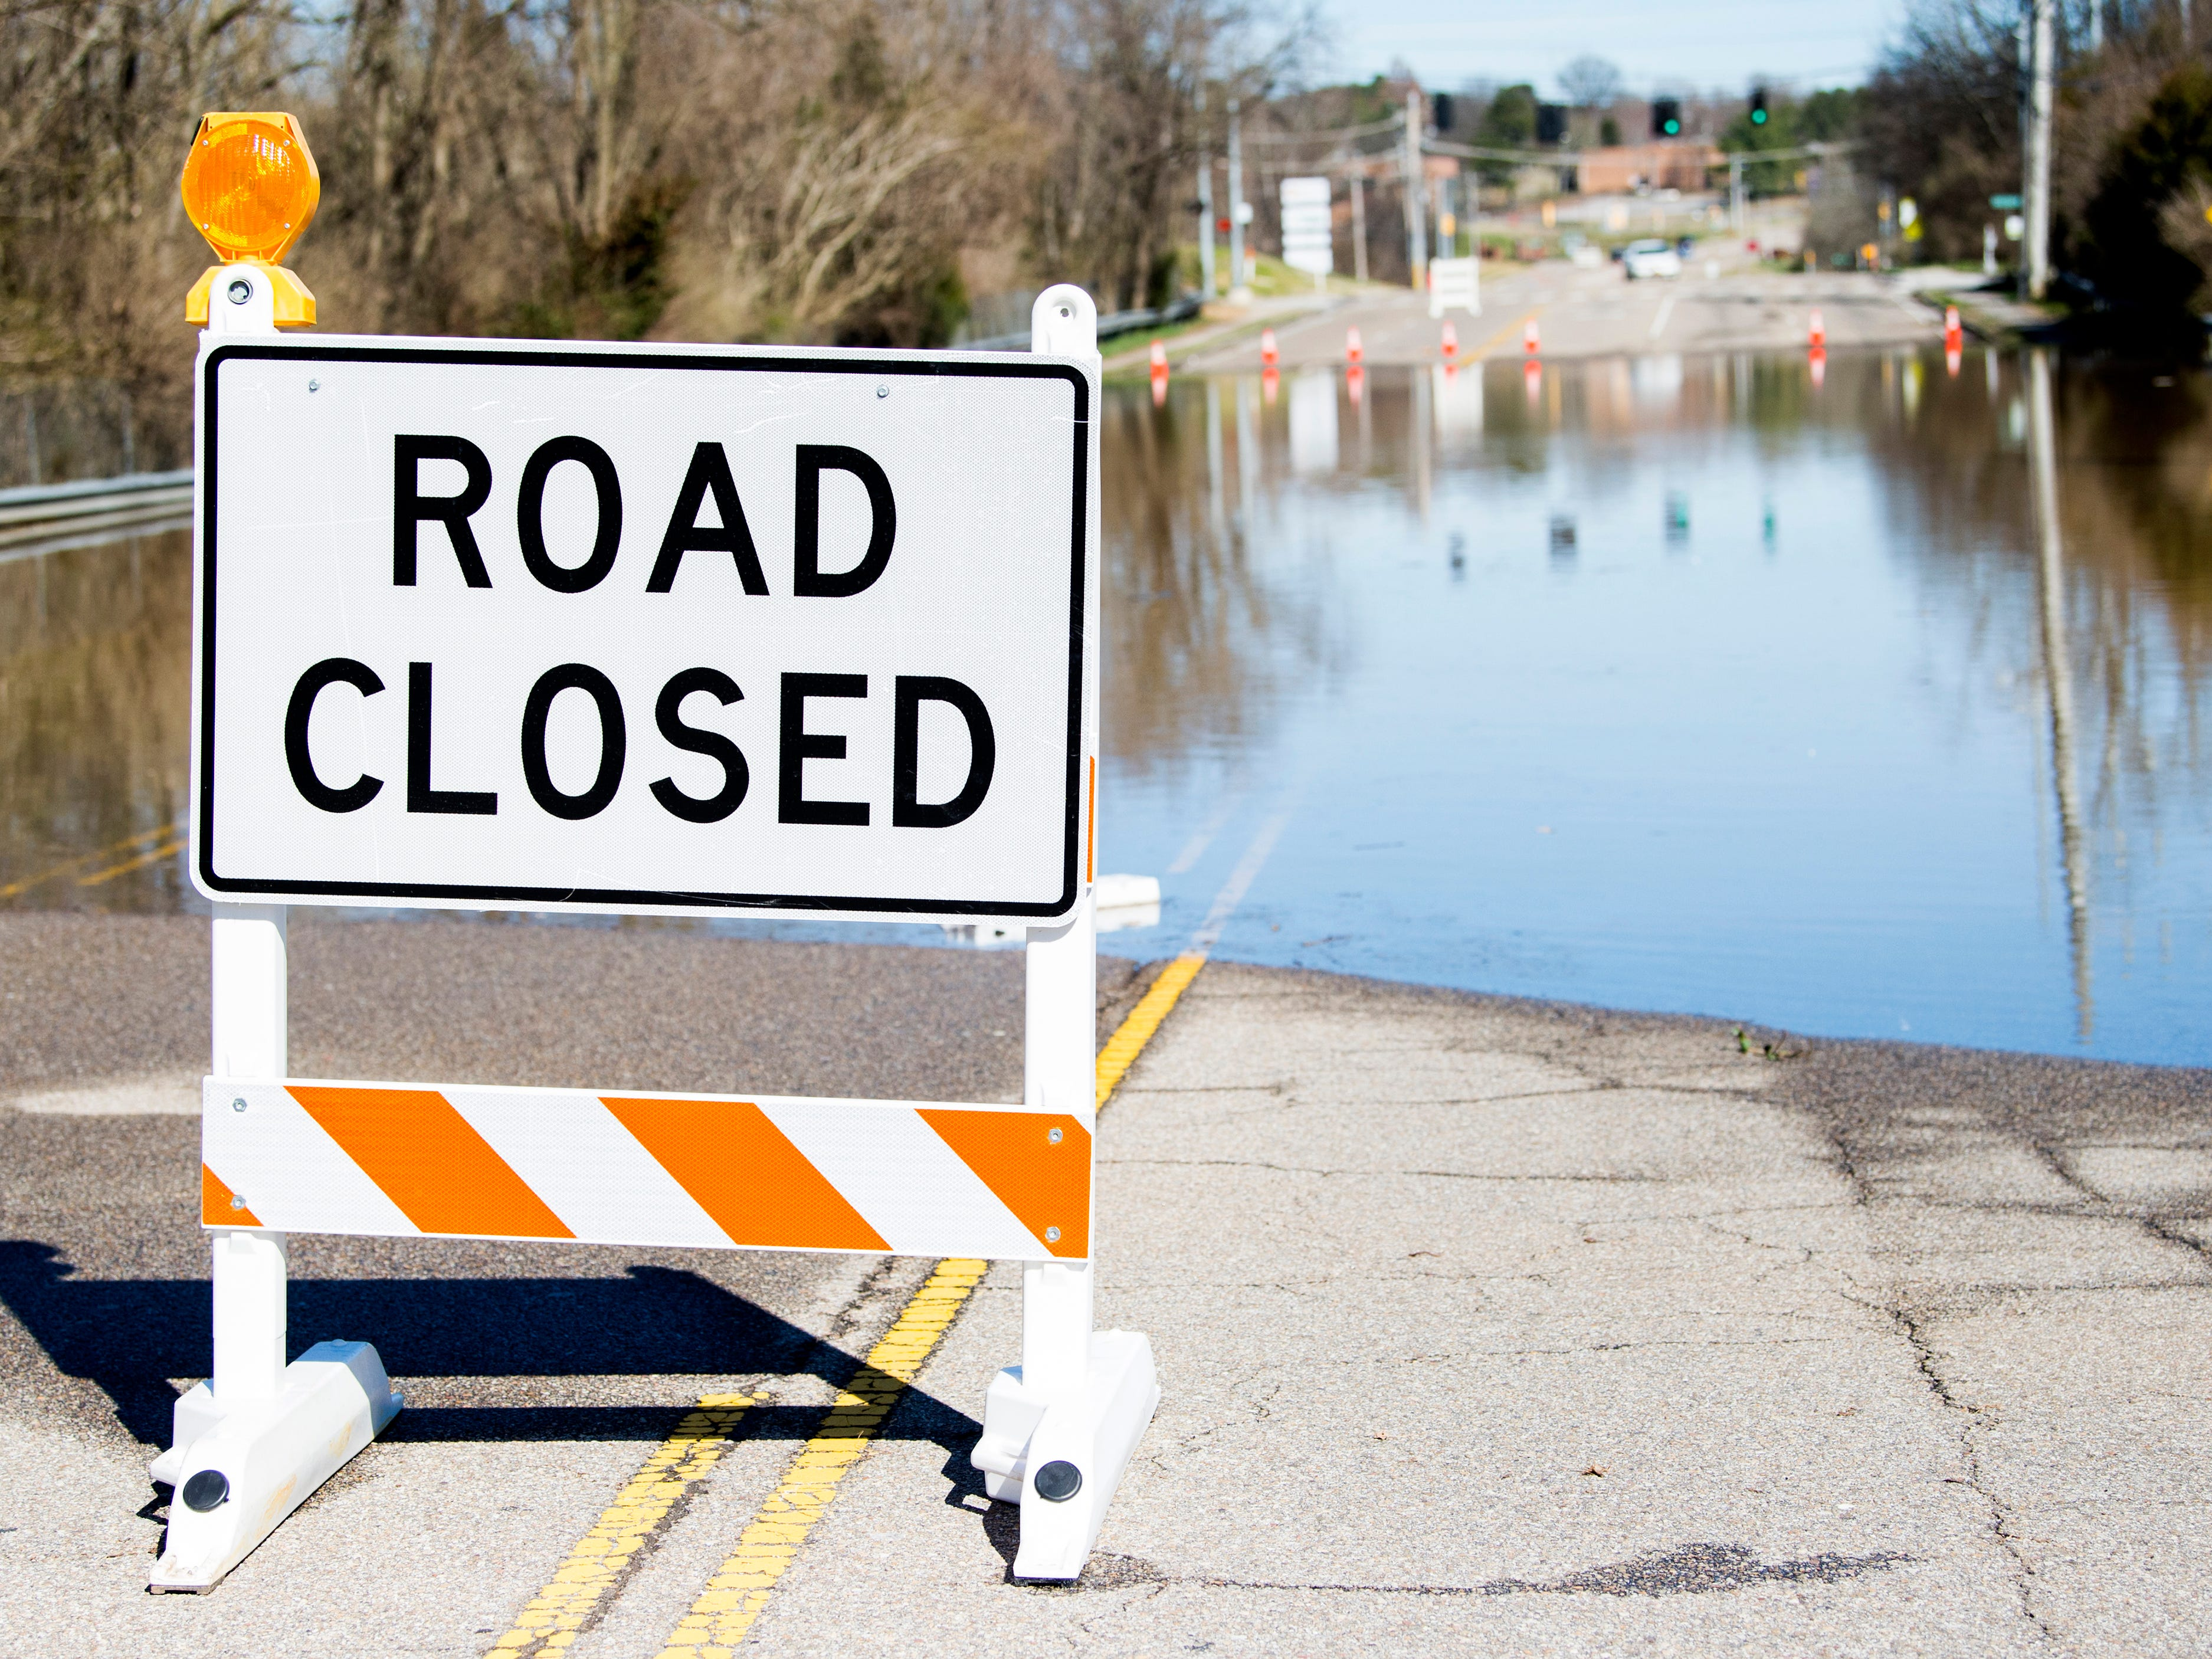 Water continues to flood parts of North Cedar Bluff Road, including this section between Sherrill Boulevard and Dutchtown Road, on Monday, Feb. 25, 2019.